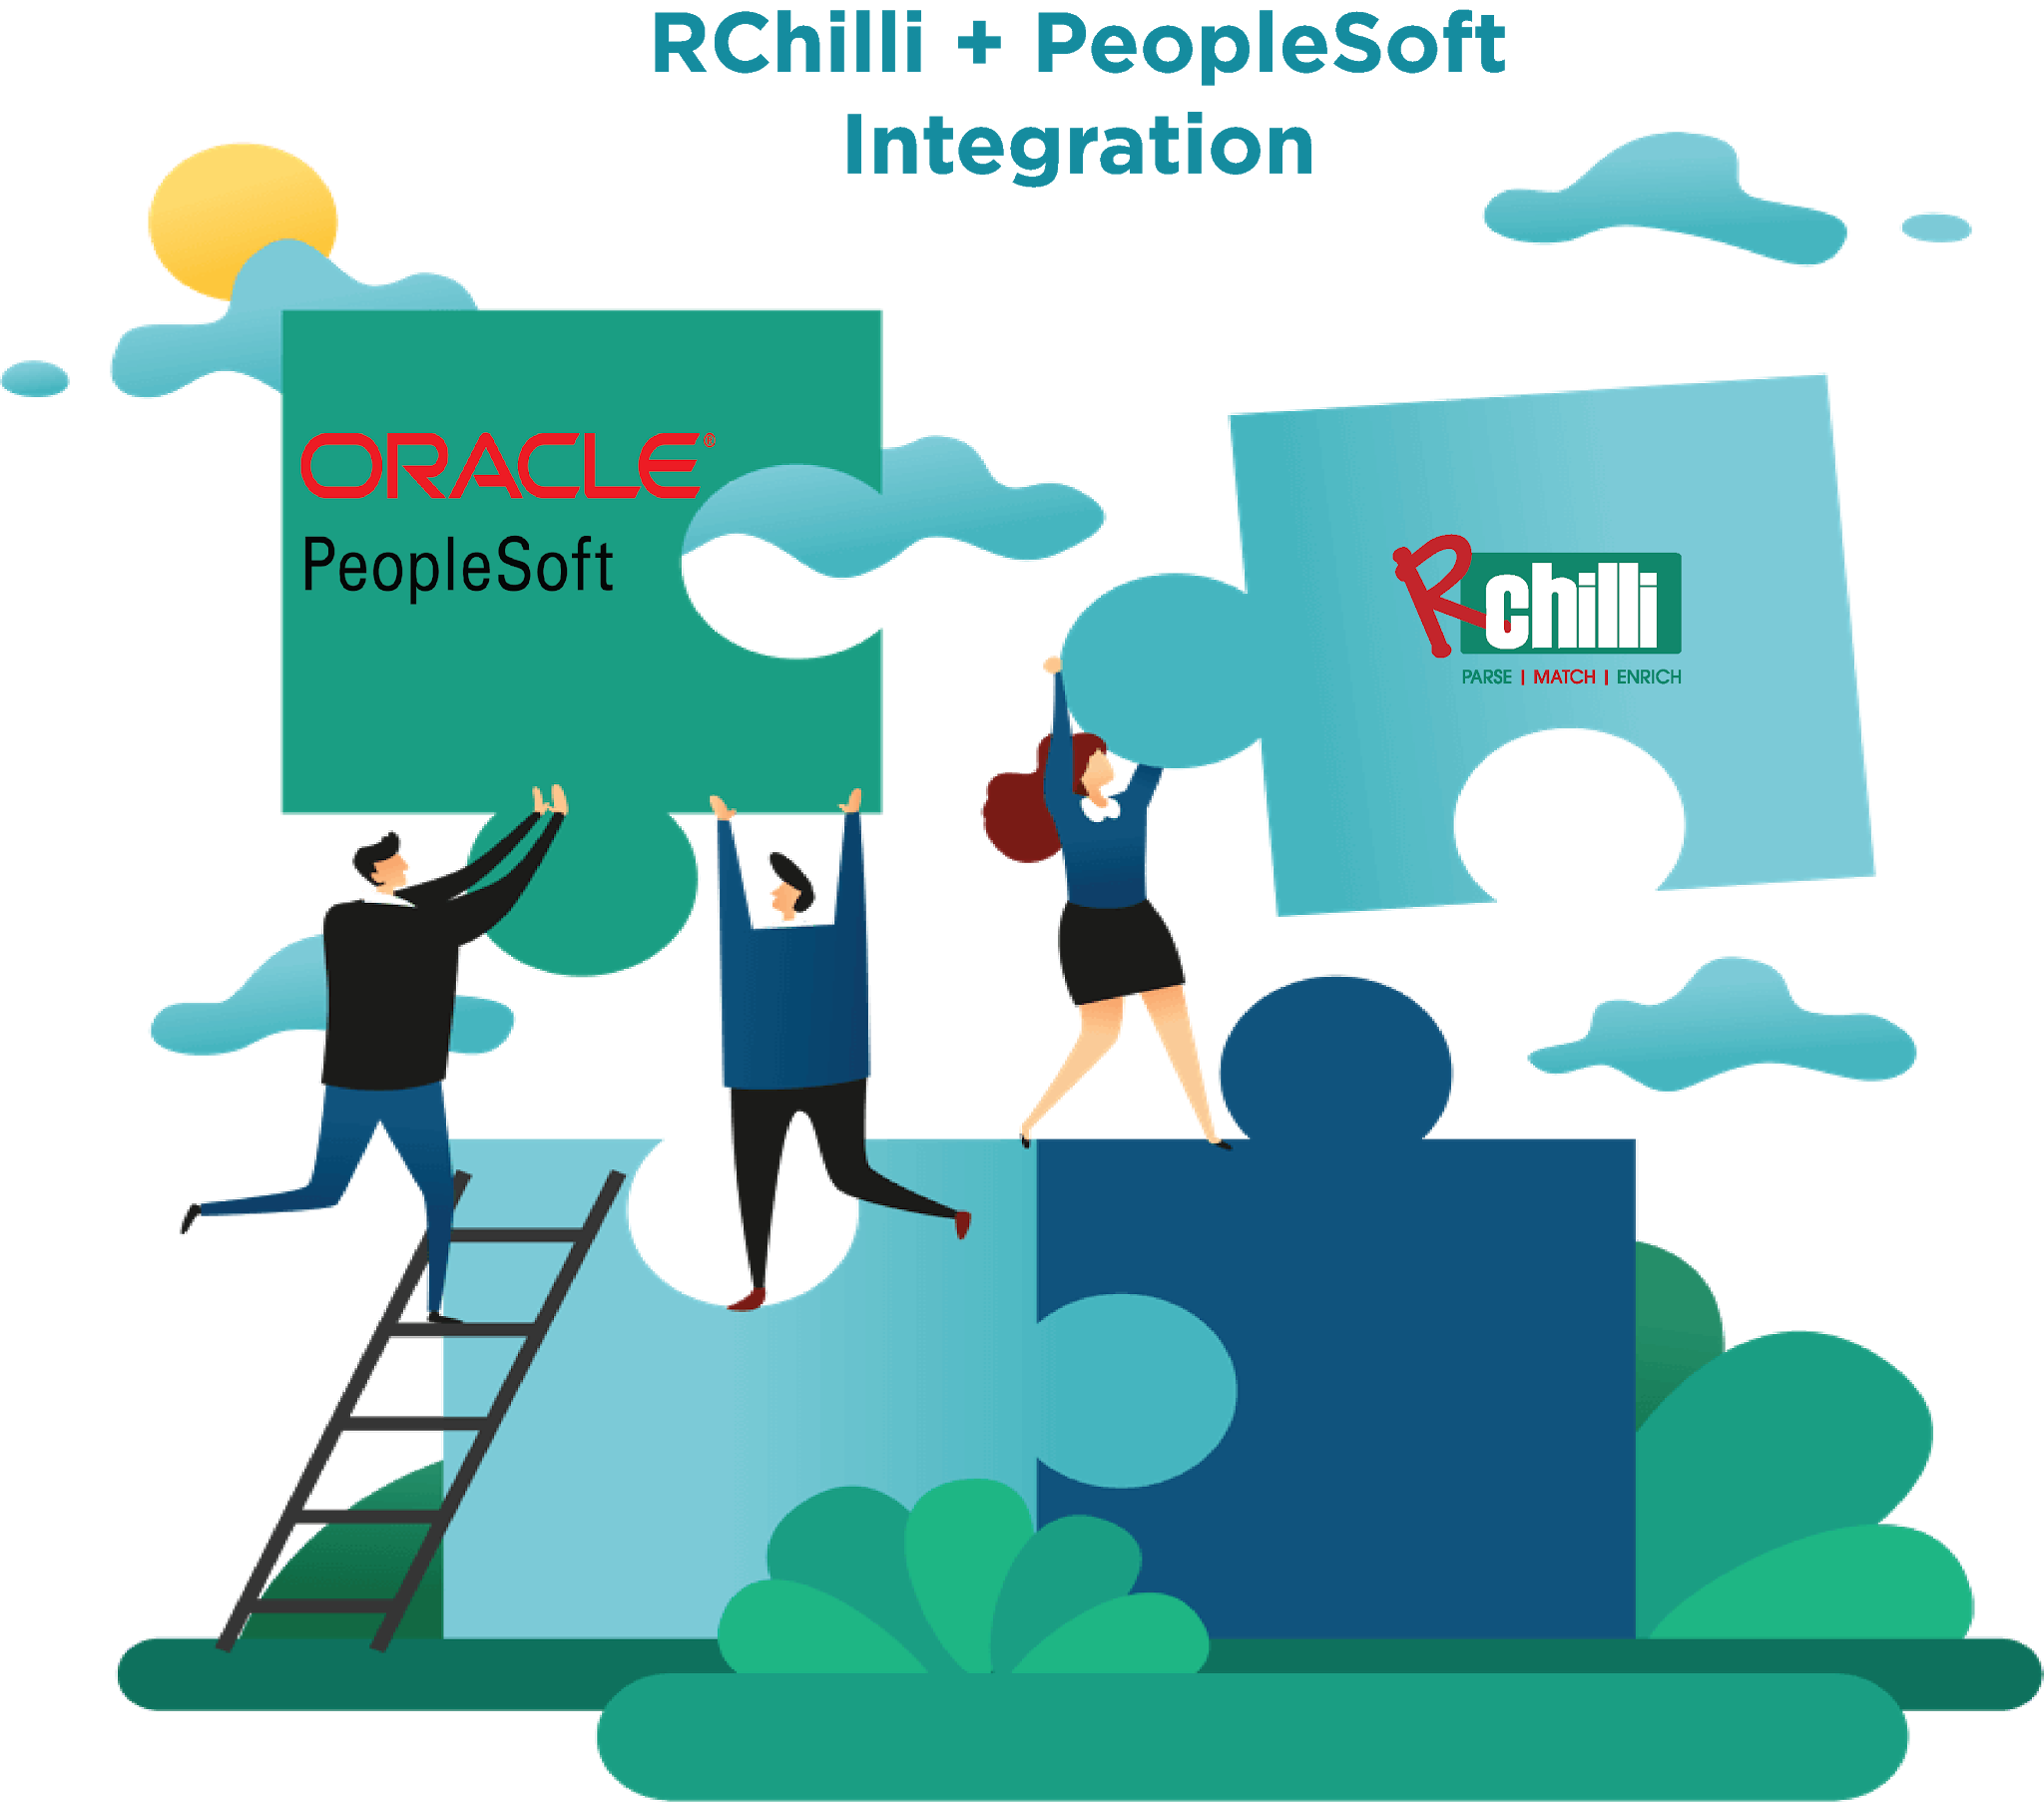 RChilli and peoplesoft integration